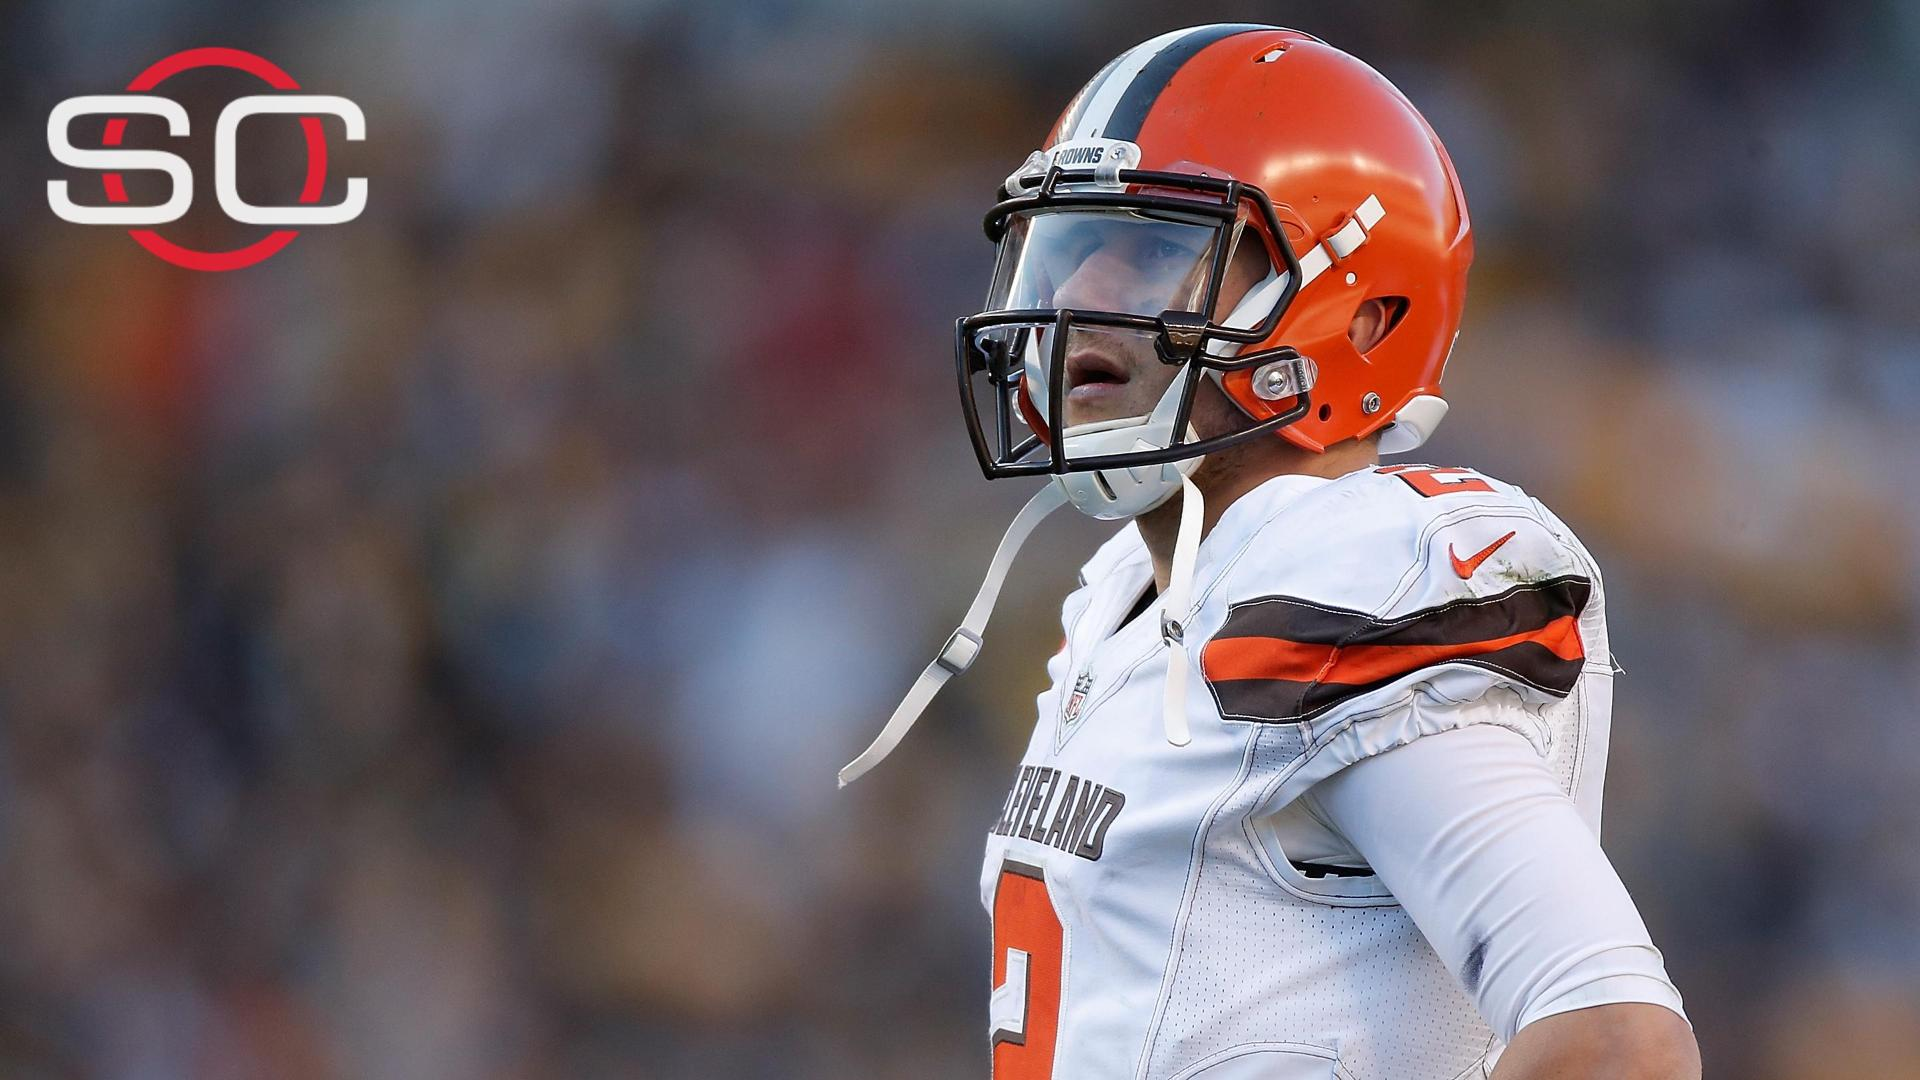 Does Manziel have a future in the NFL?